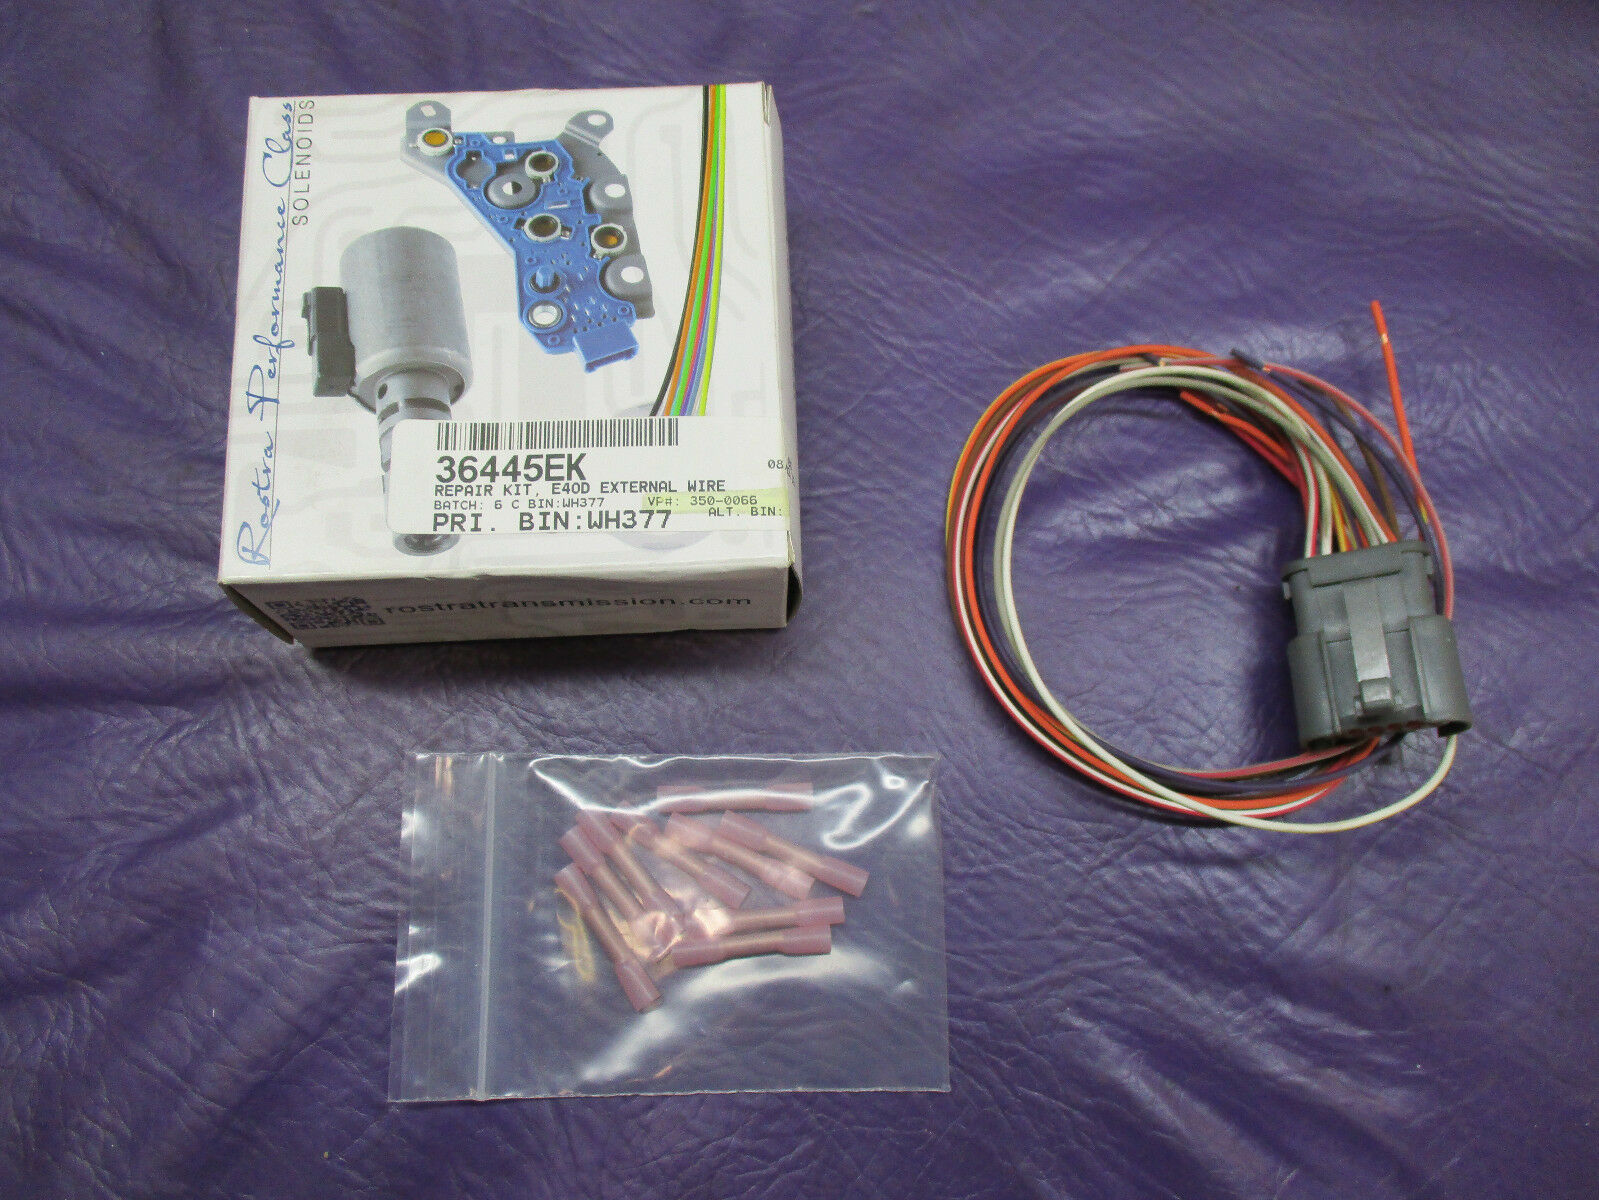 hight resolution of ford e4od transmission external wire harness repair kit 1989 1994 36445ek for sale